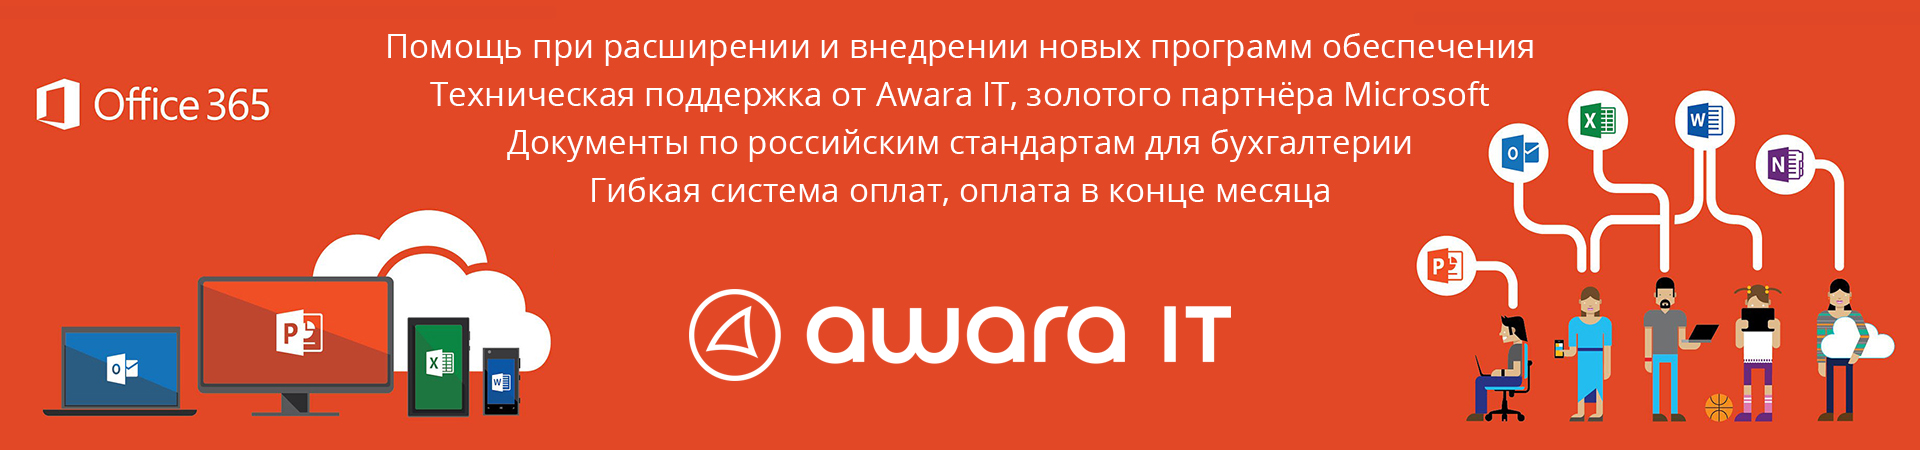 Office365 awara it